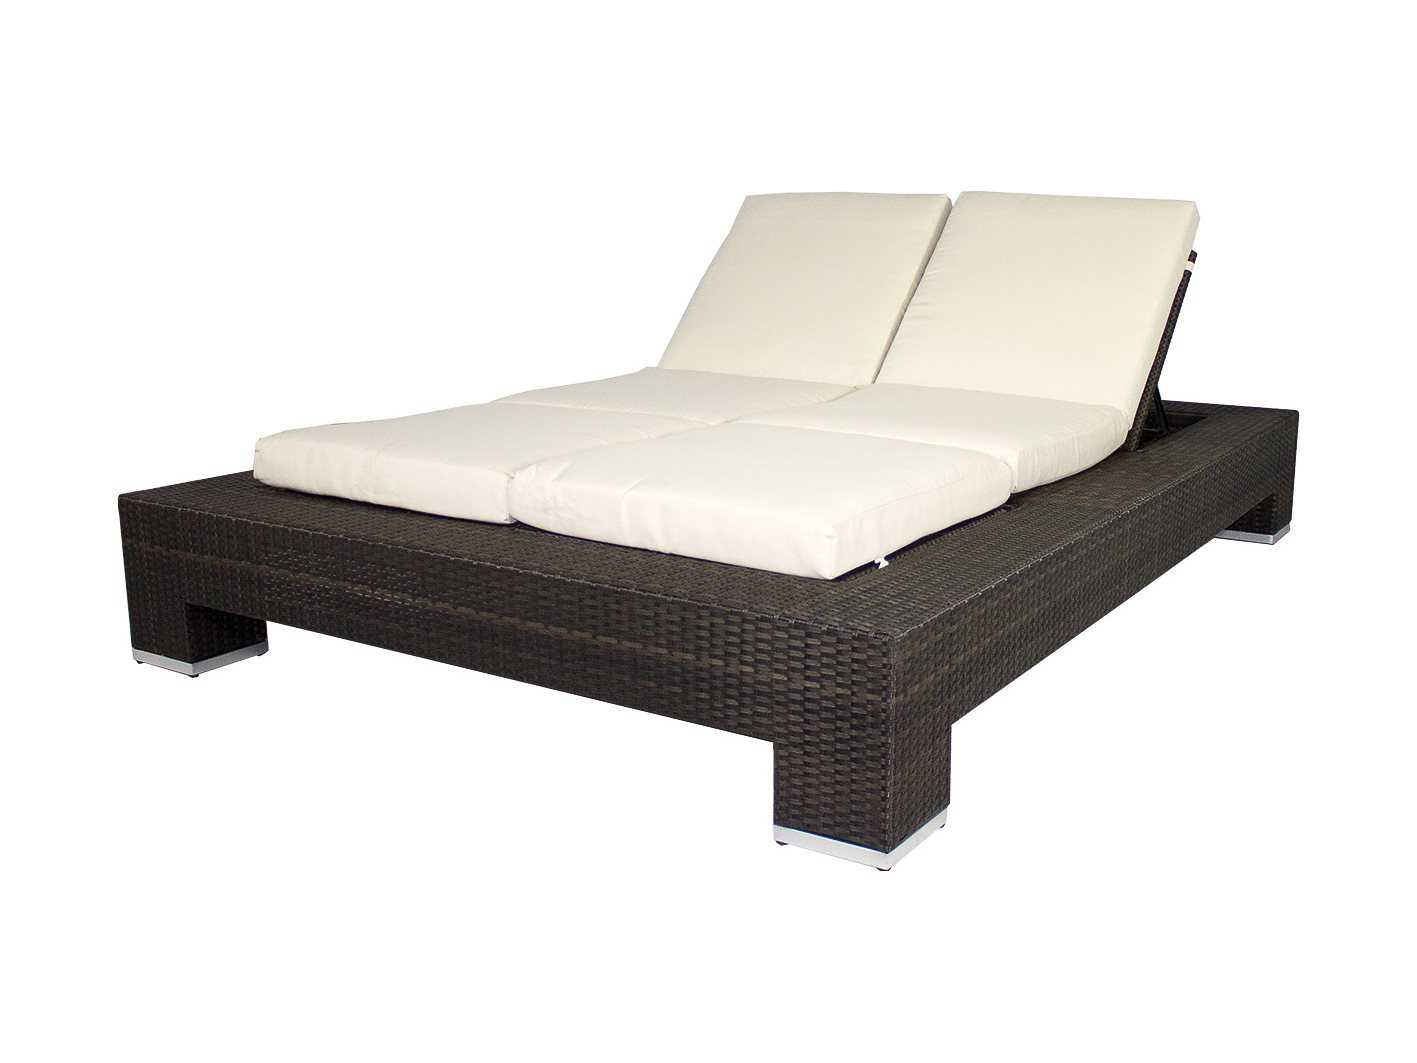 source outdoor furniture king double chaise lounge. Black Bedroom Furniture Sets. Home Design Ideas